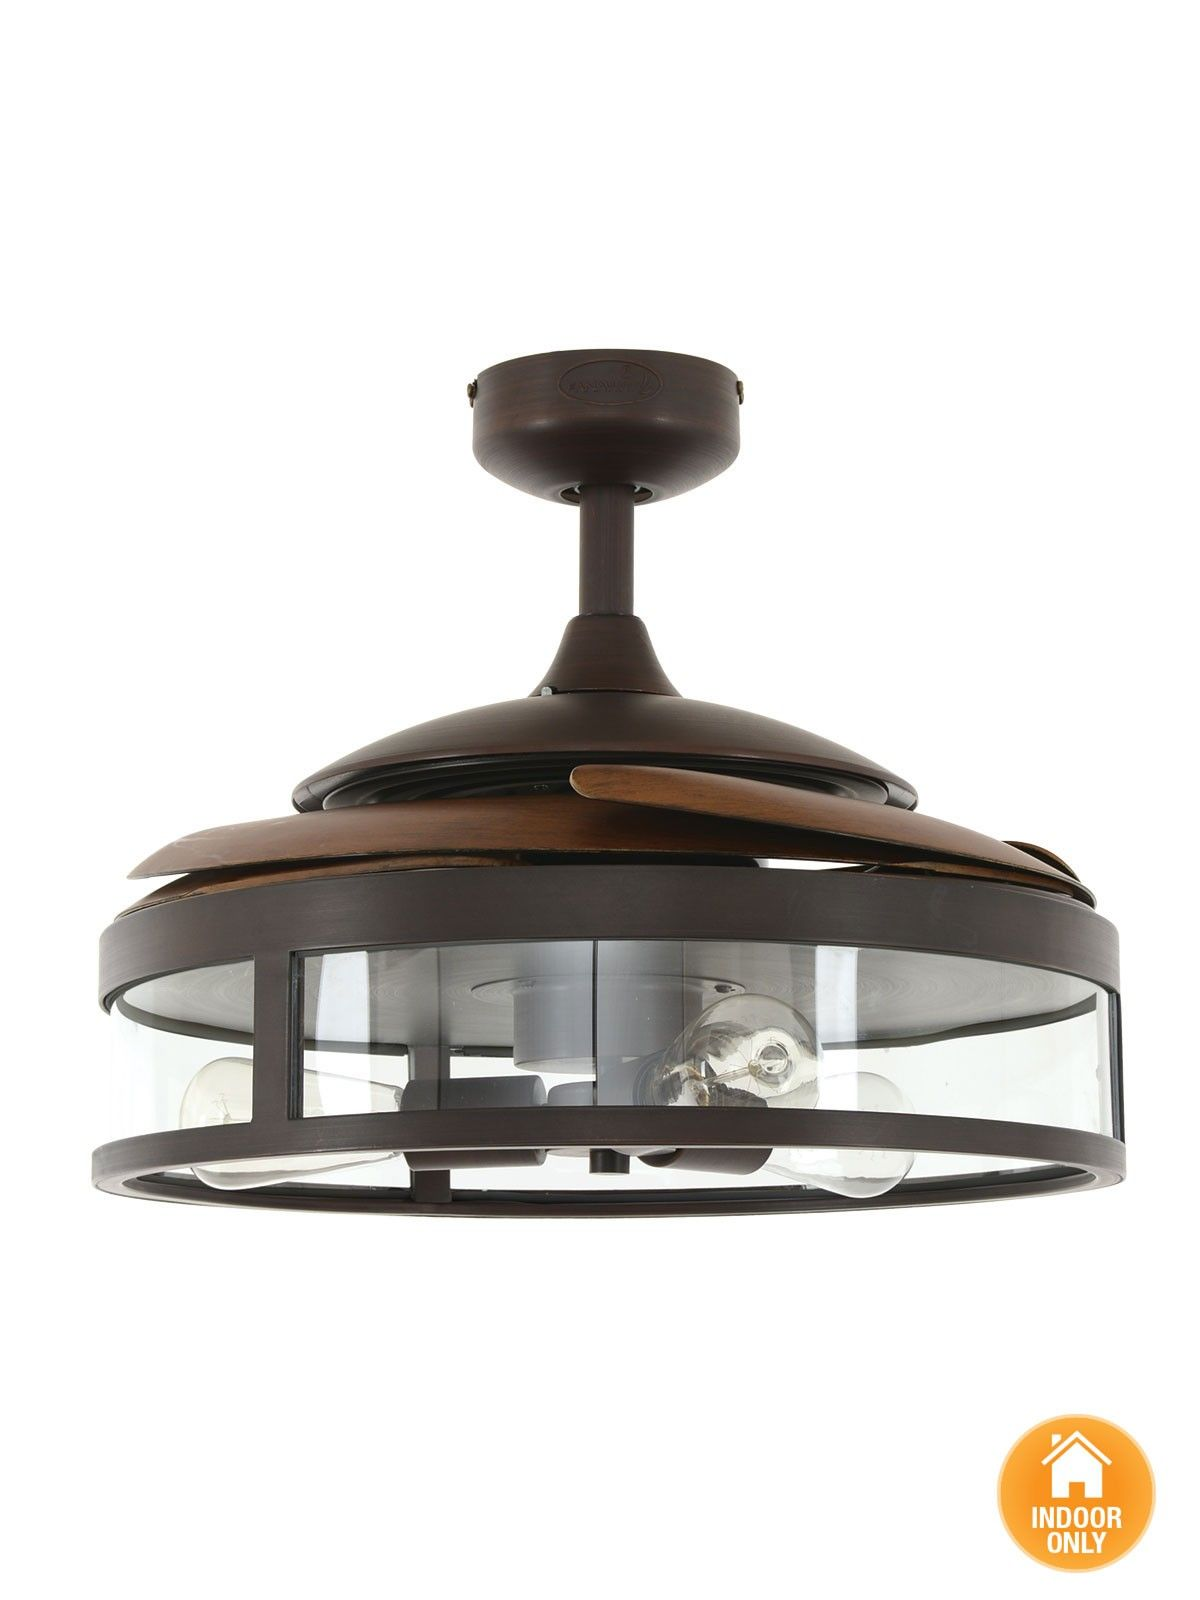 Fanaway Classic ORB Ceiling Fan With Clear Retractable Blades and ...